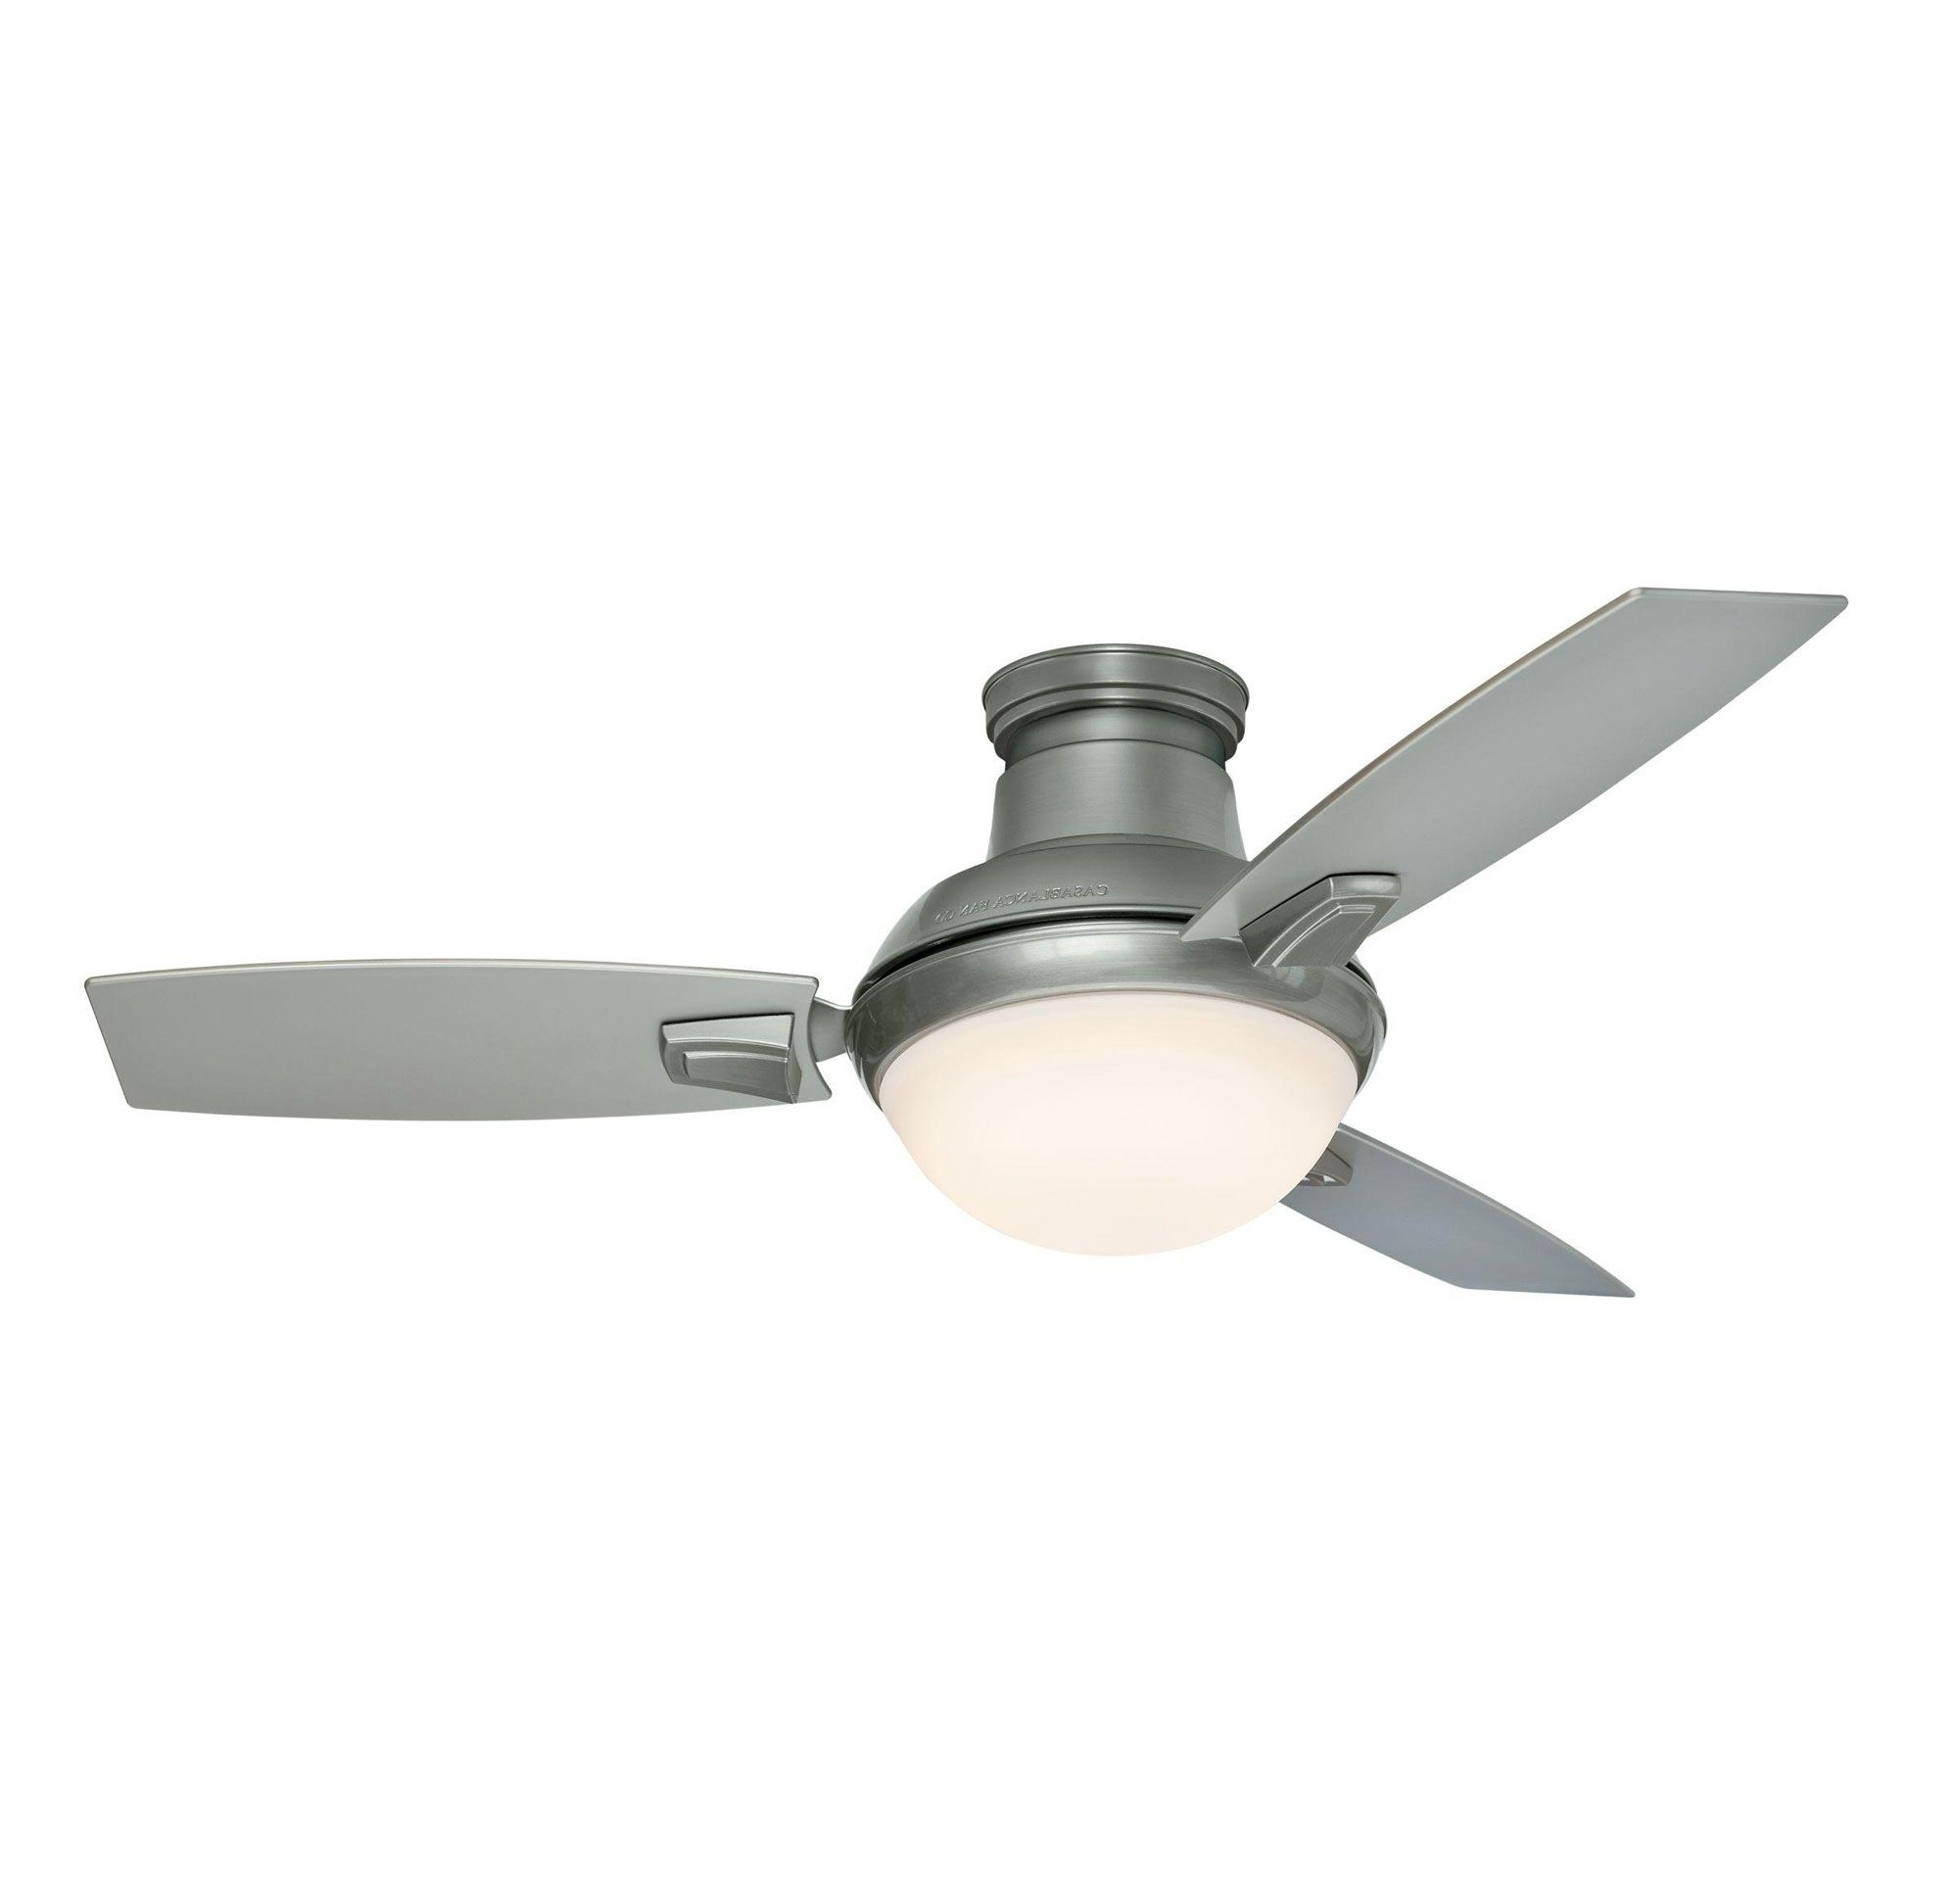 44 Inch Outdoor Ceiling Fans With Lights Intended For Most Recently Released Verse 44 Inch Led Ceiling Fan Is Perfect For A Small Or Medium Sized (Gallery 12 of 20)